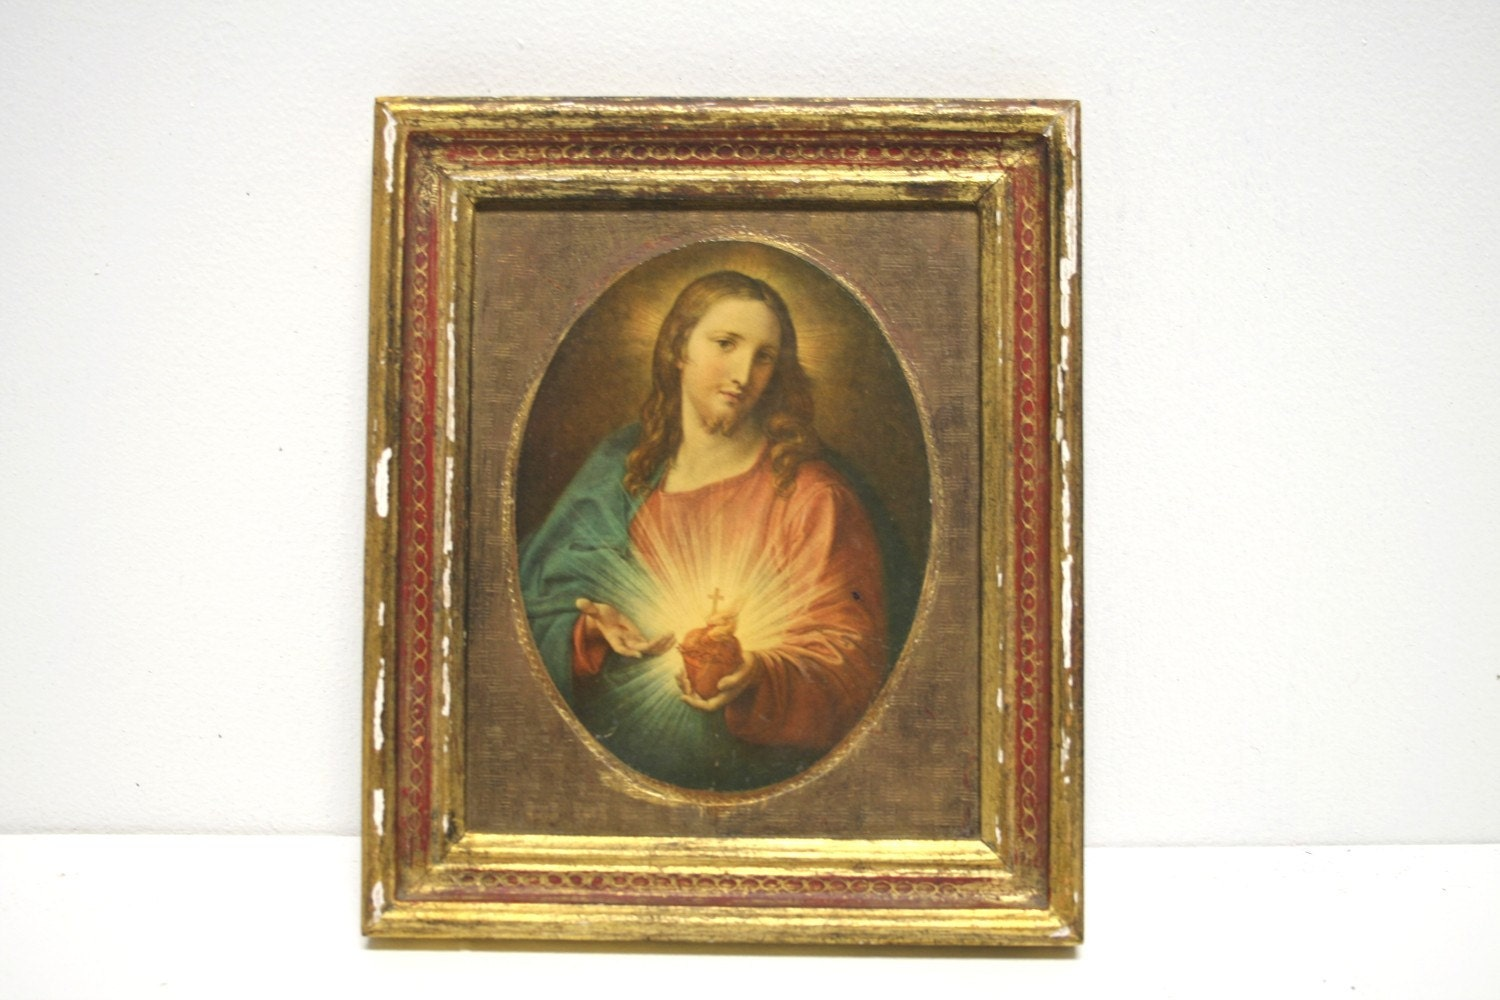 Antique Italian Florentine Gold Gilded Wood Religious Portrait